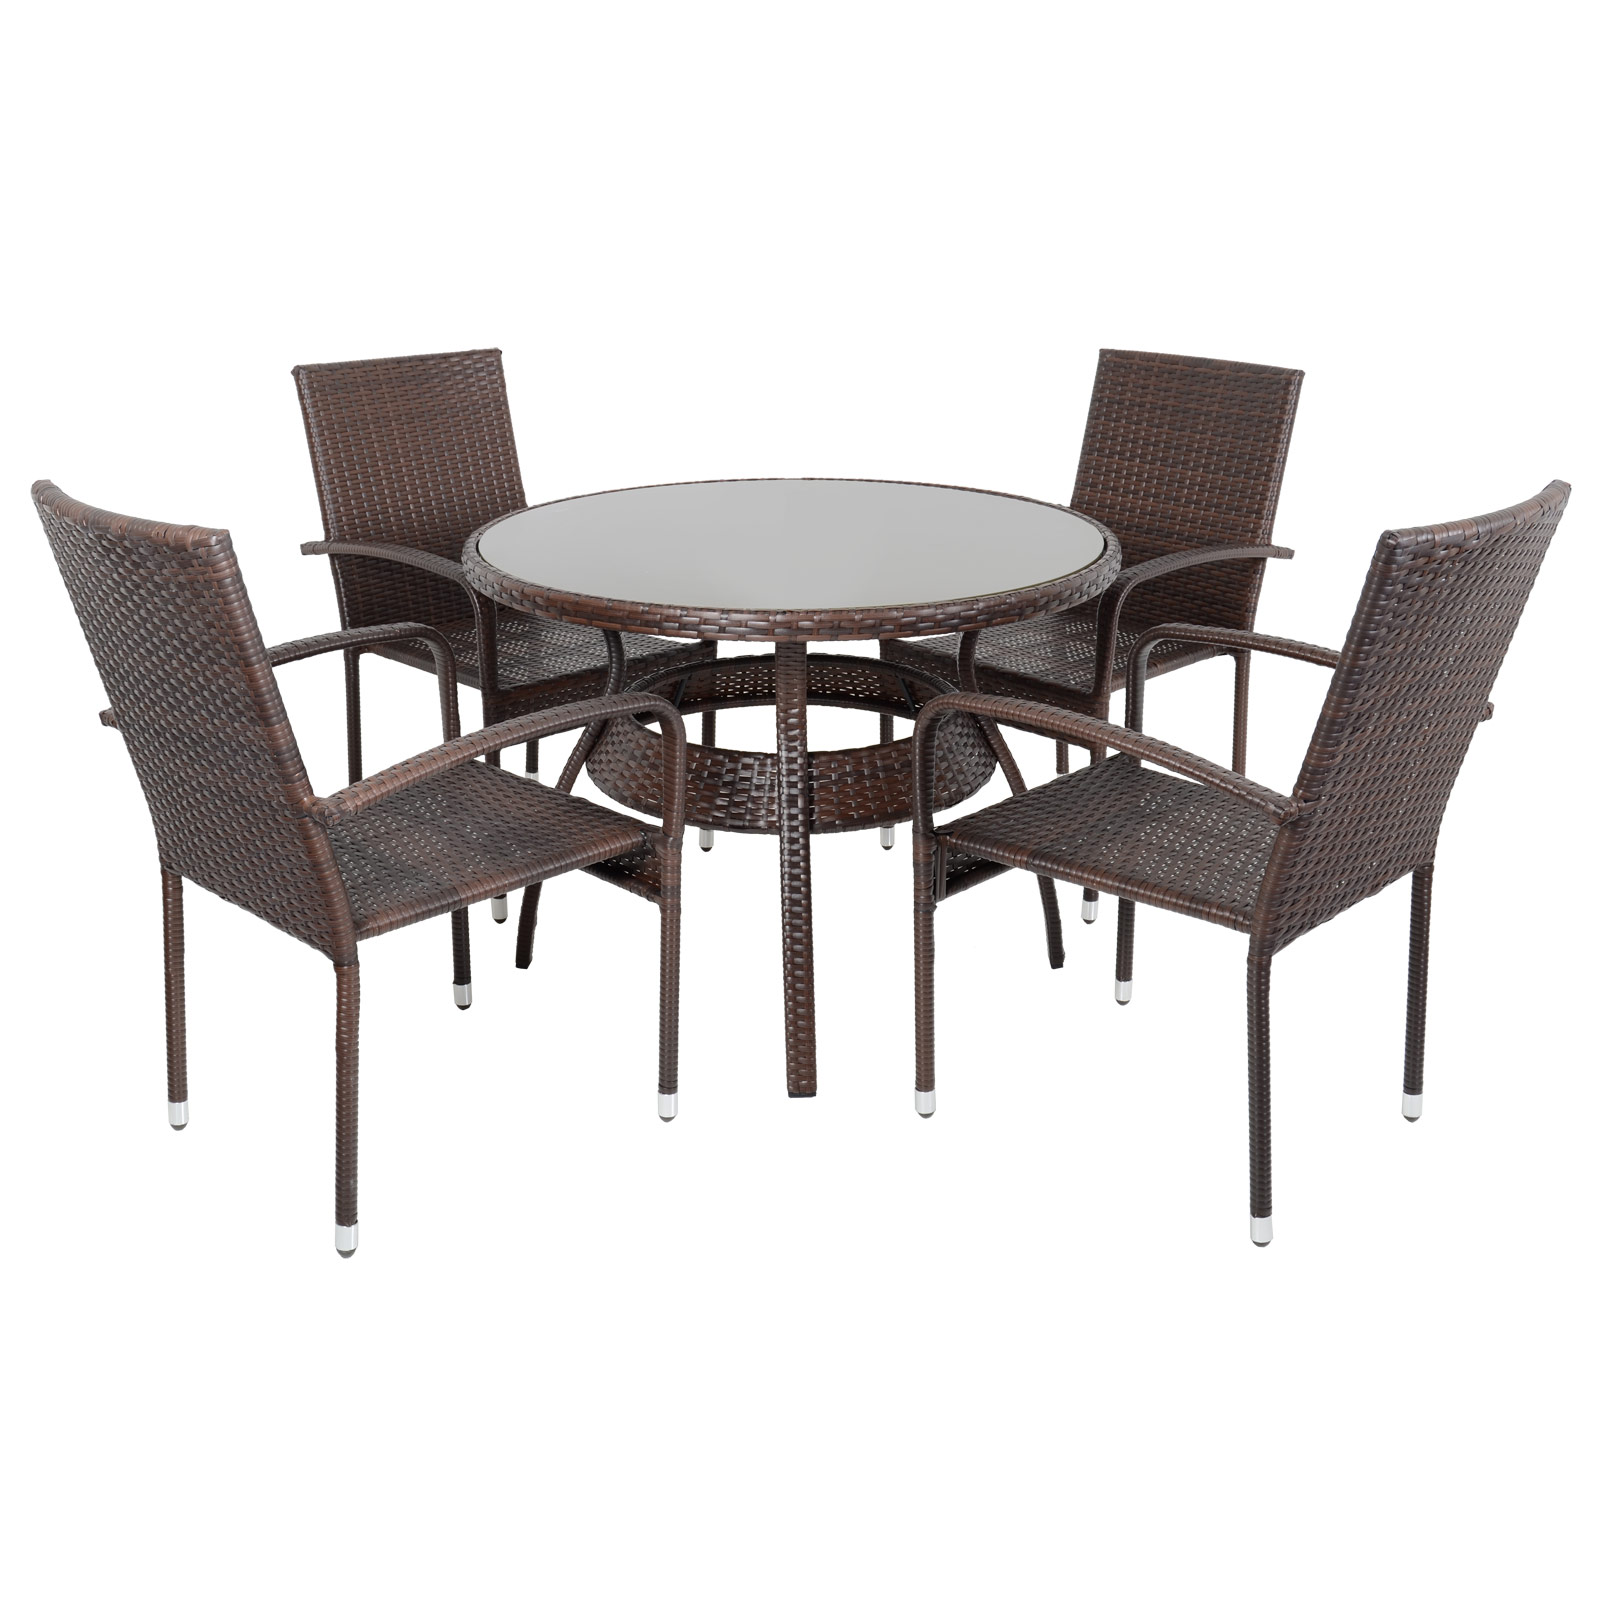 Rattan Dining Table And Chairs: Ravenna Dining Table 4 Chairs Brown Rattan Wicker